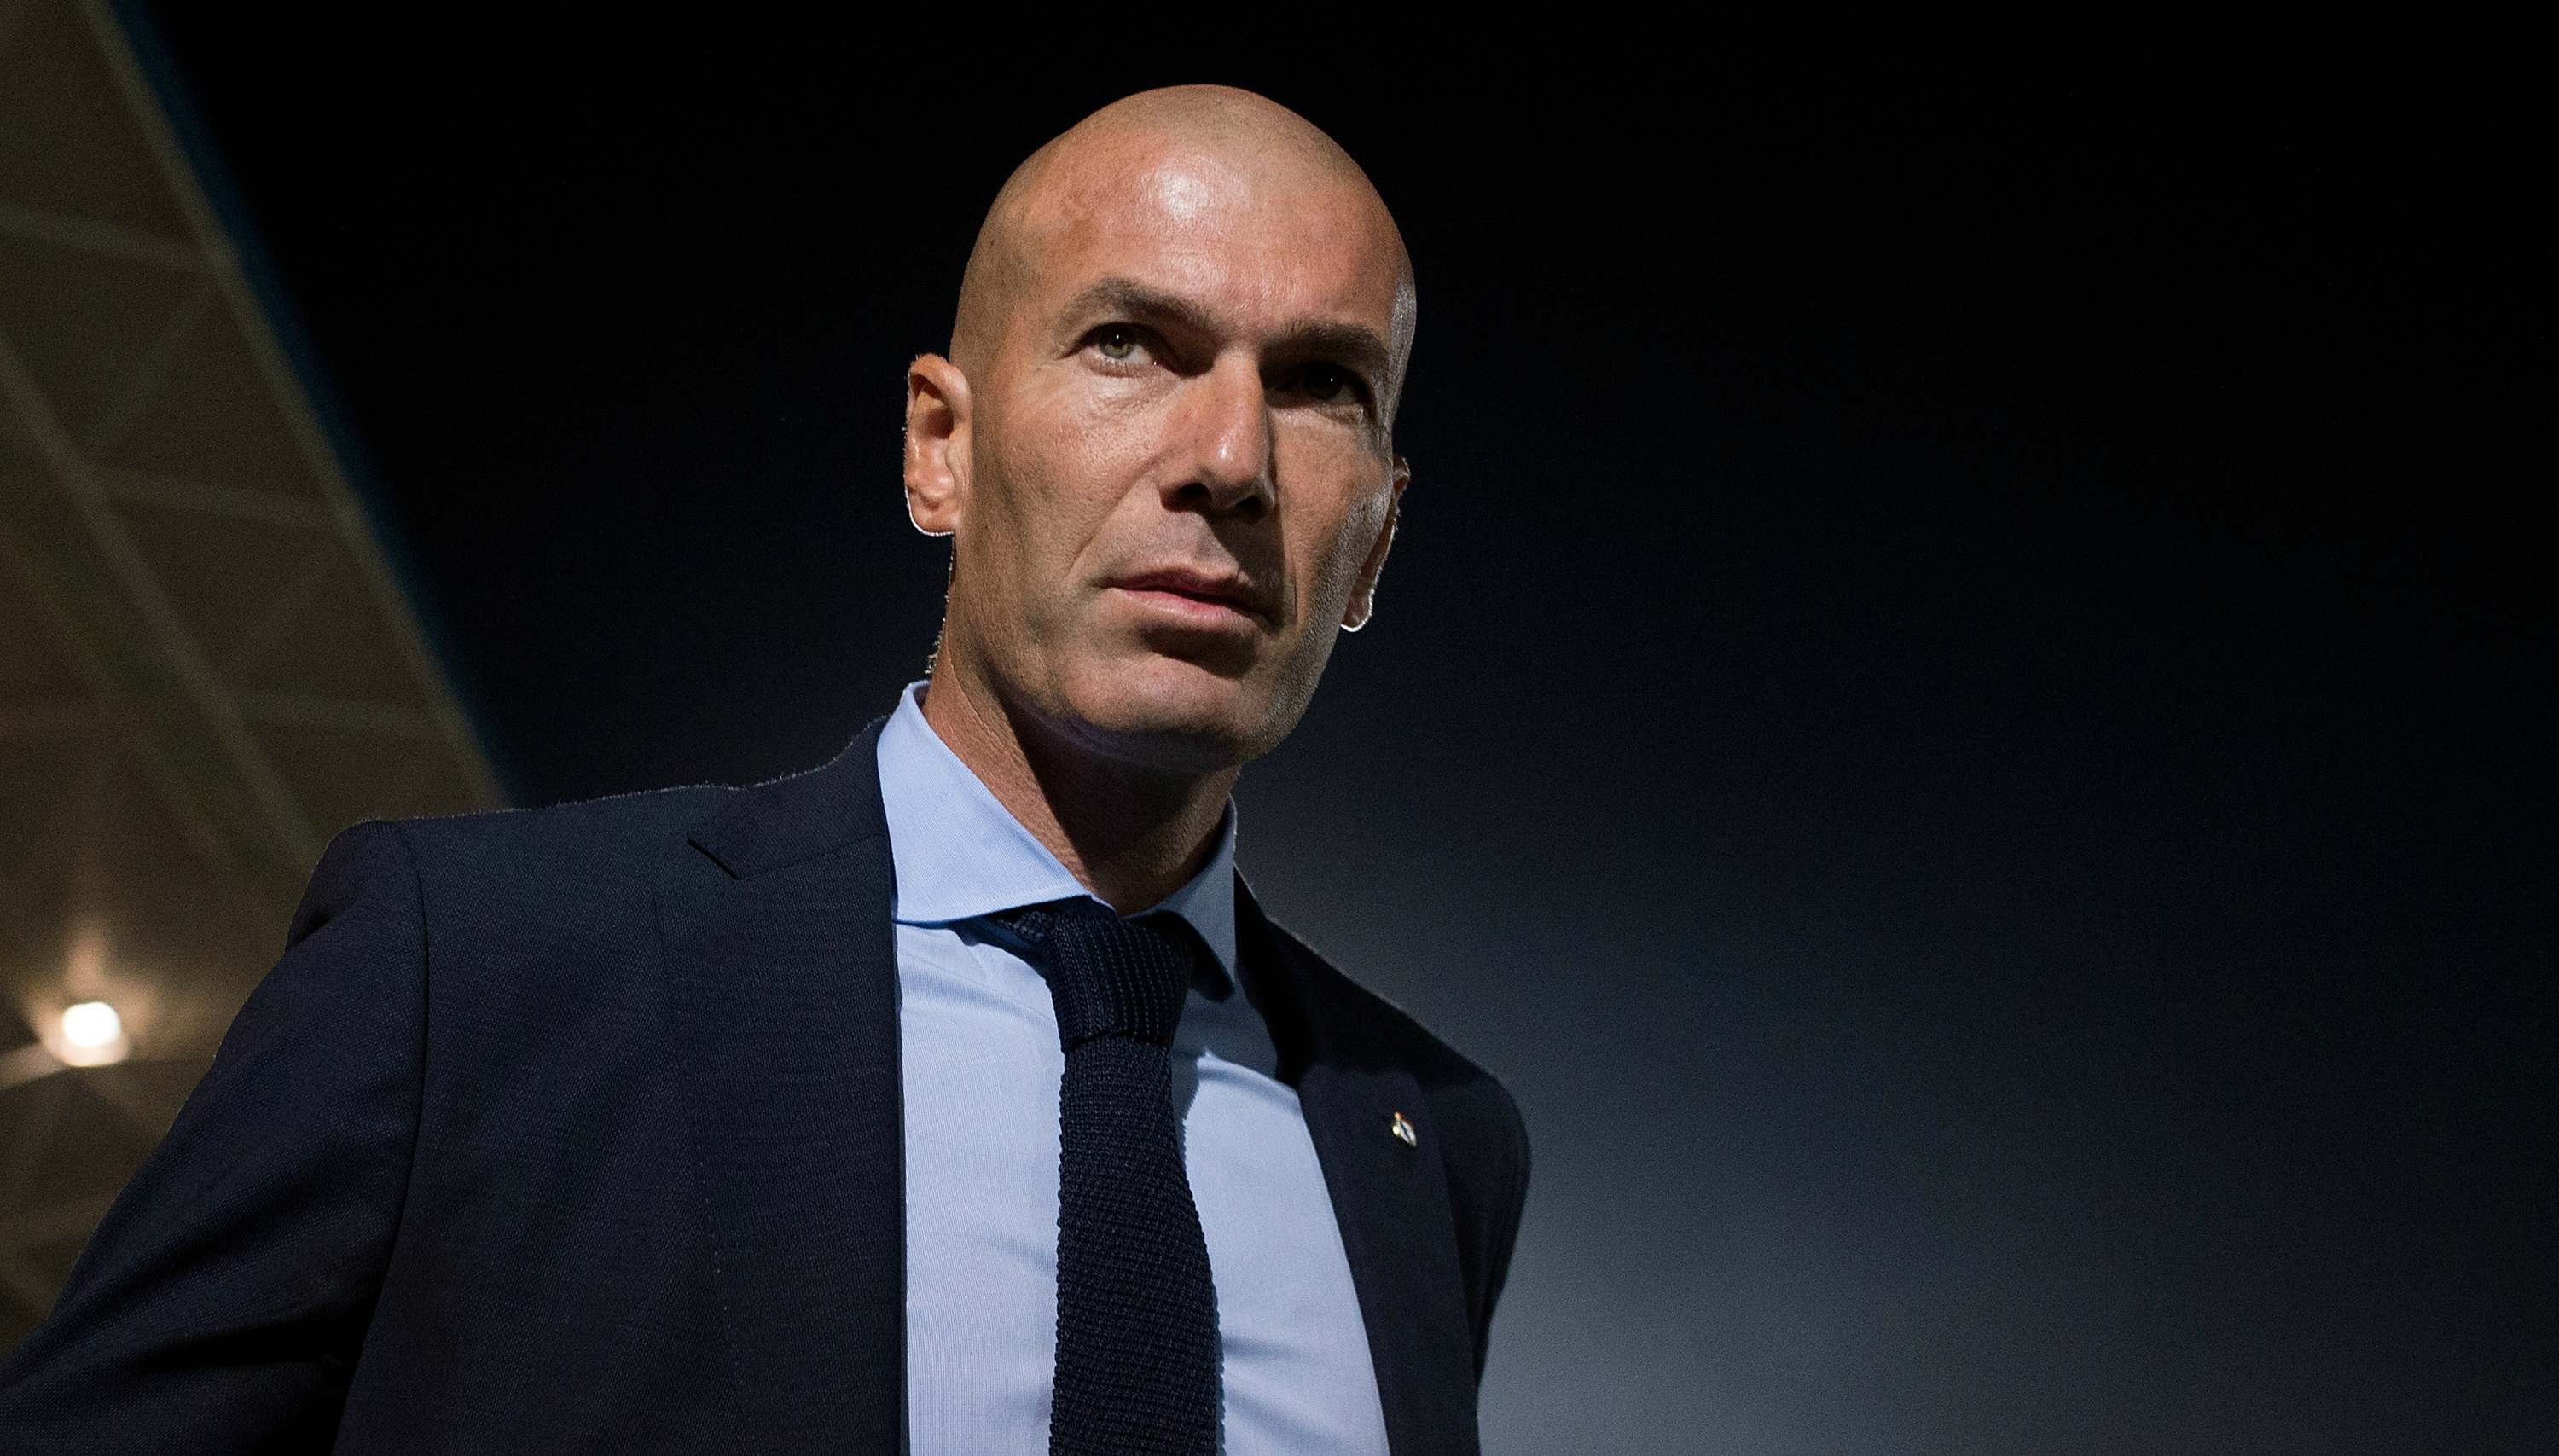 Real Madrid should trust Zinedine Zidane to put things right, just like he did the last time his ...